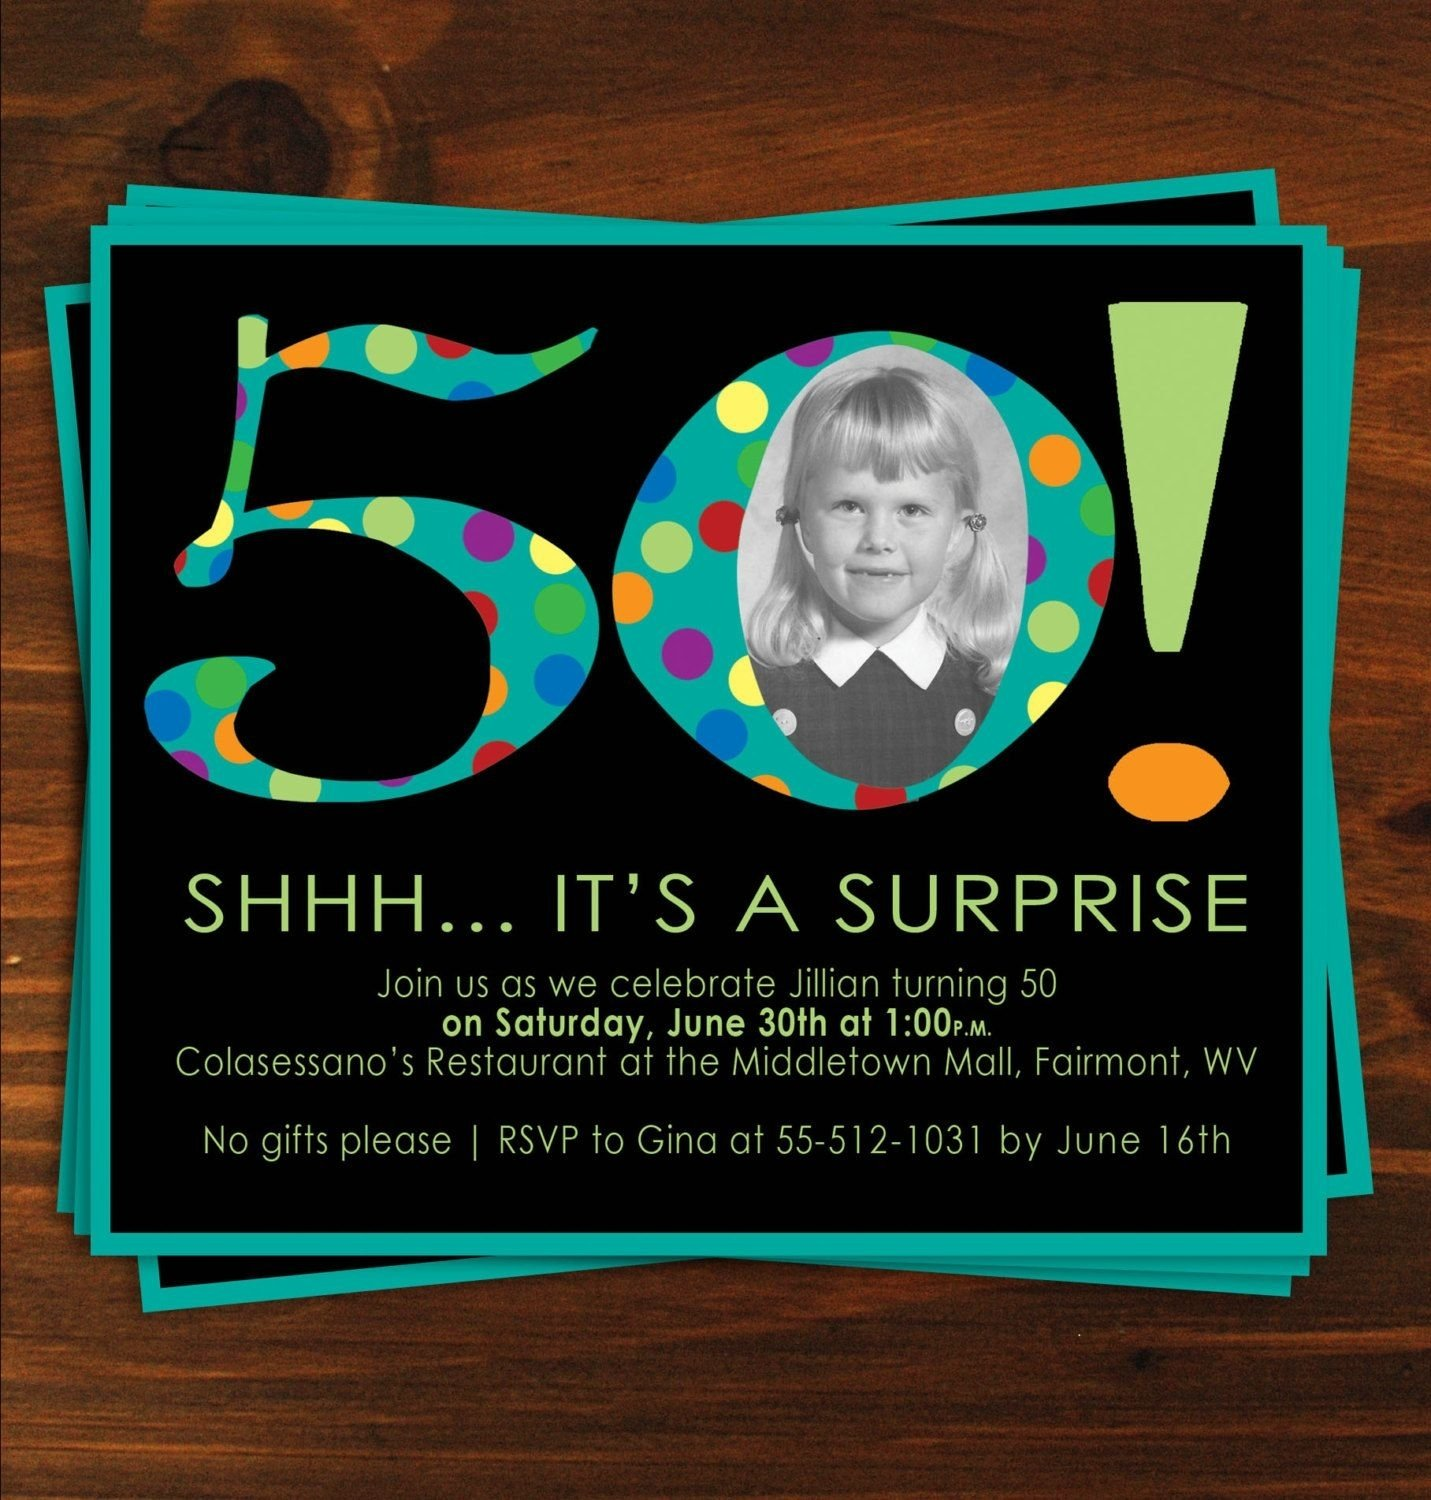 50th birthday party invitations ideas | new invitations | pinterest